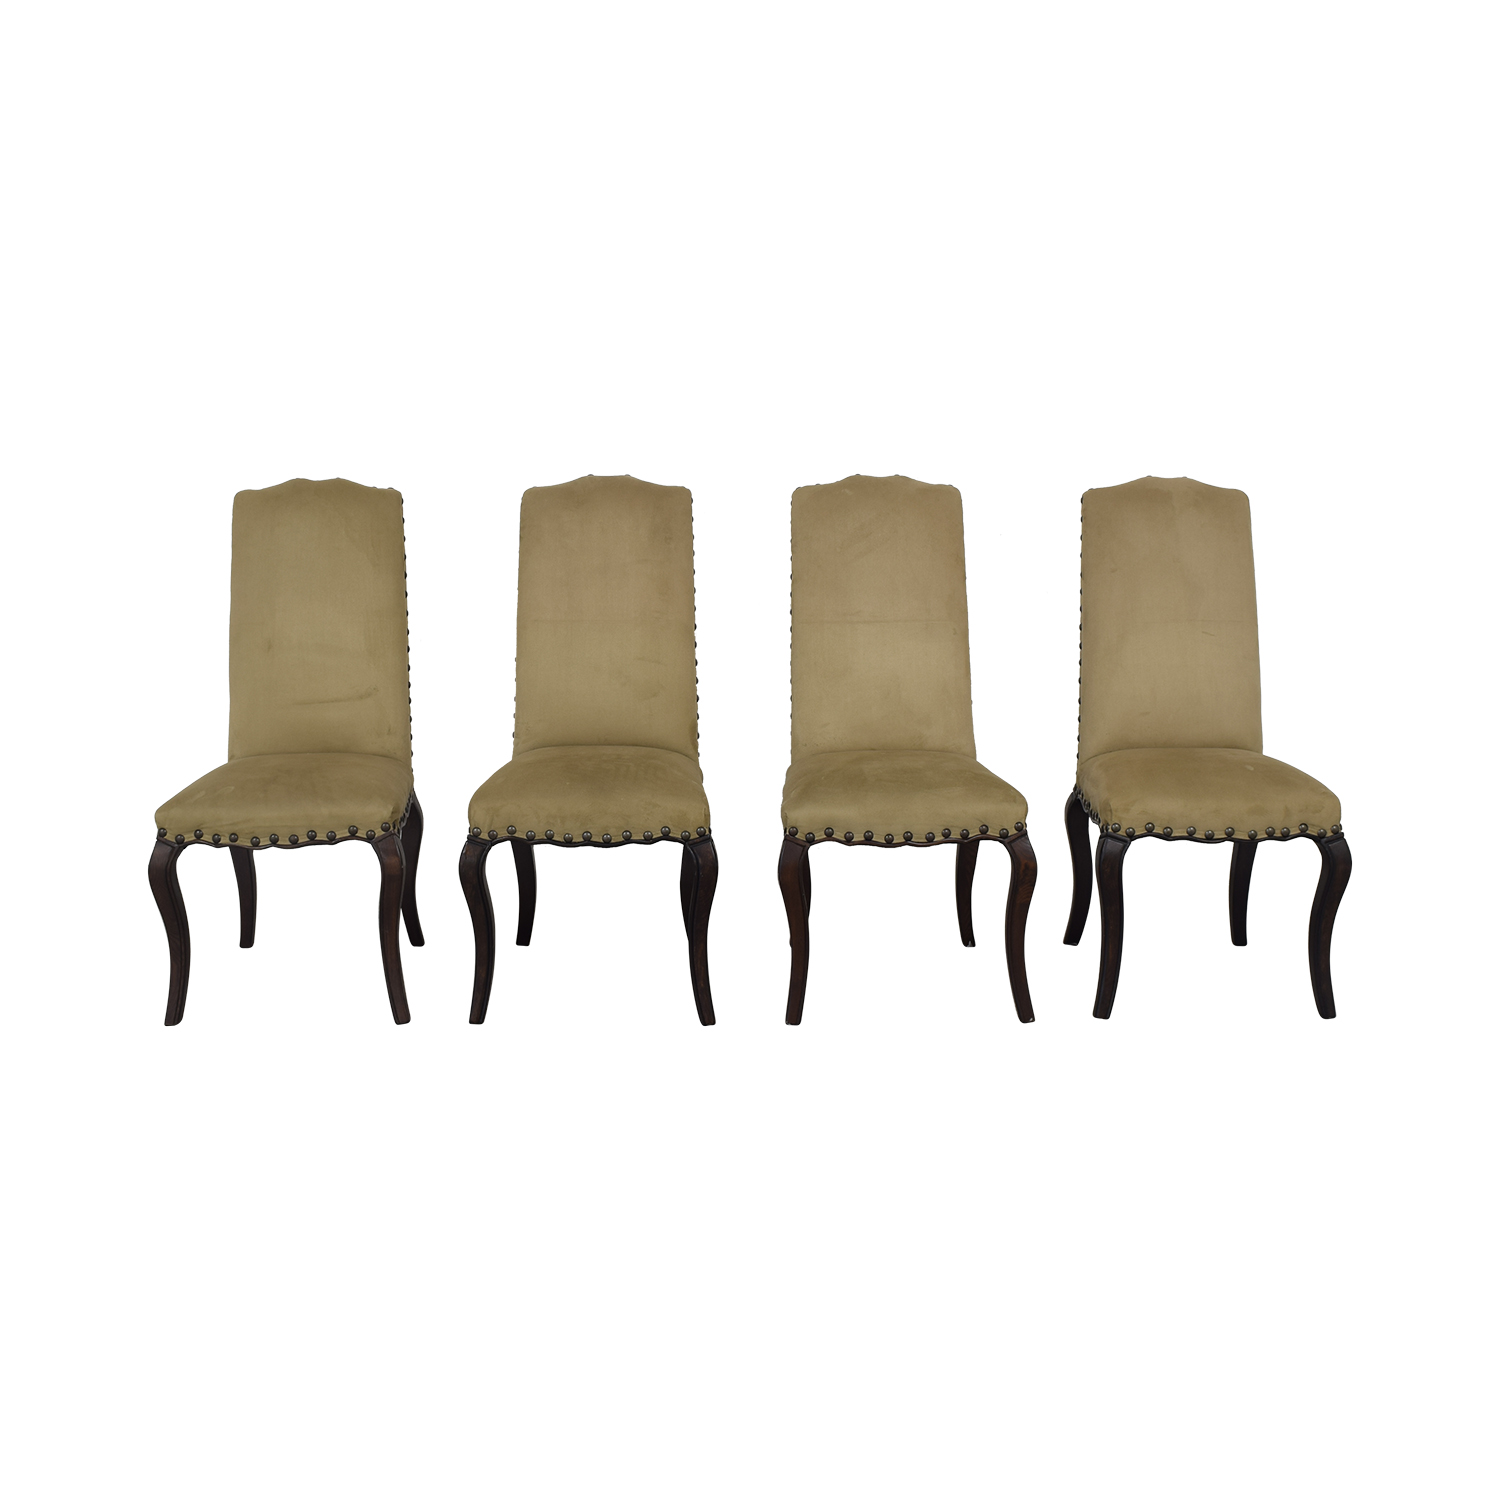 buy Pottery Barn Calais Dining Chairs Pottery Barn Chairs